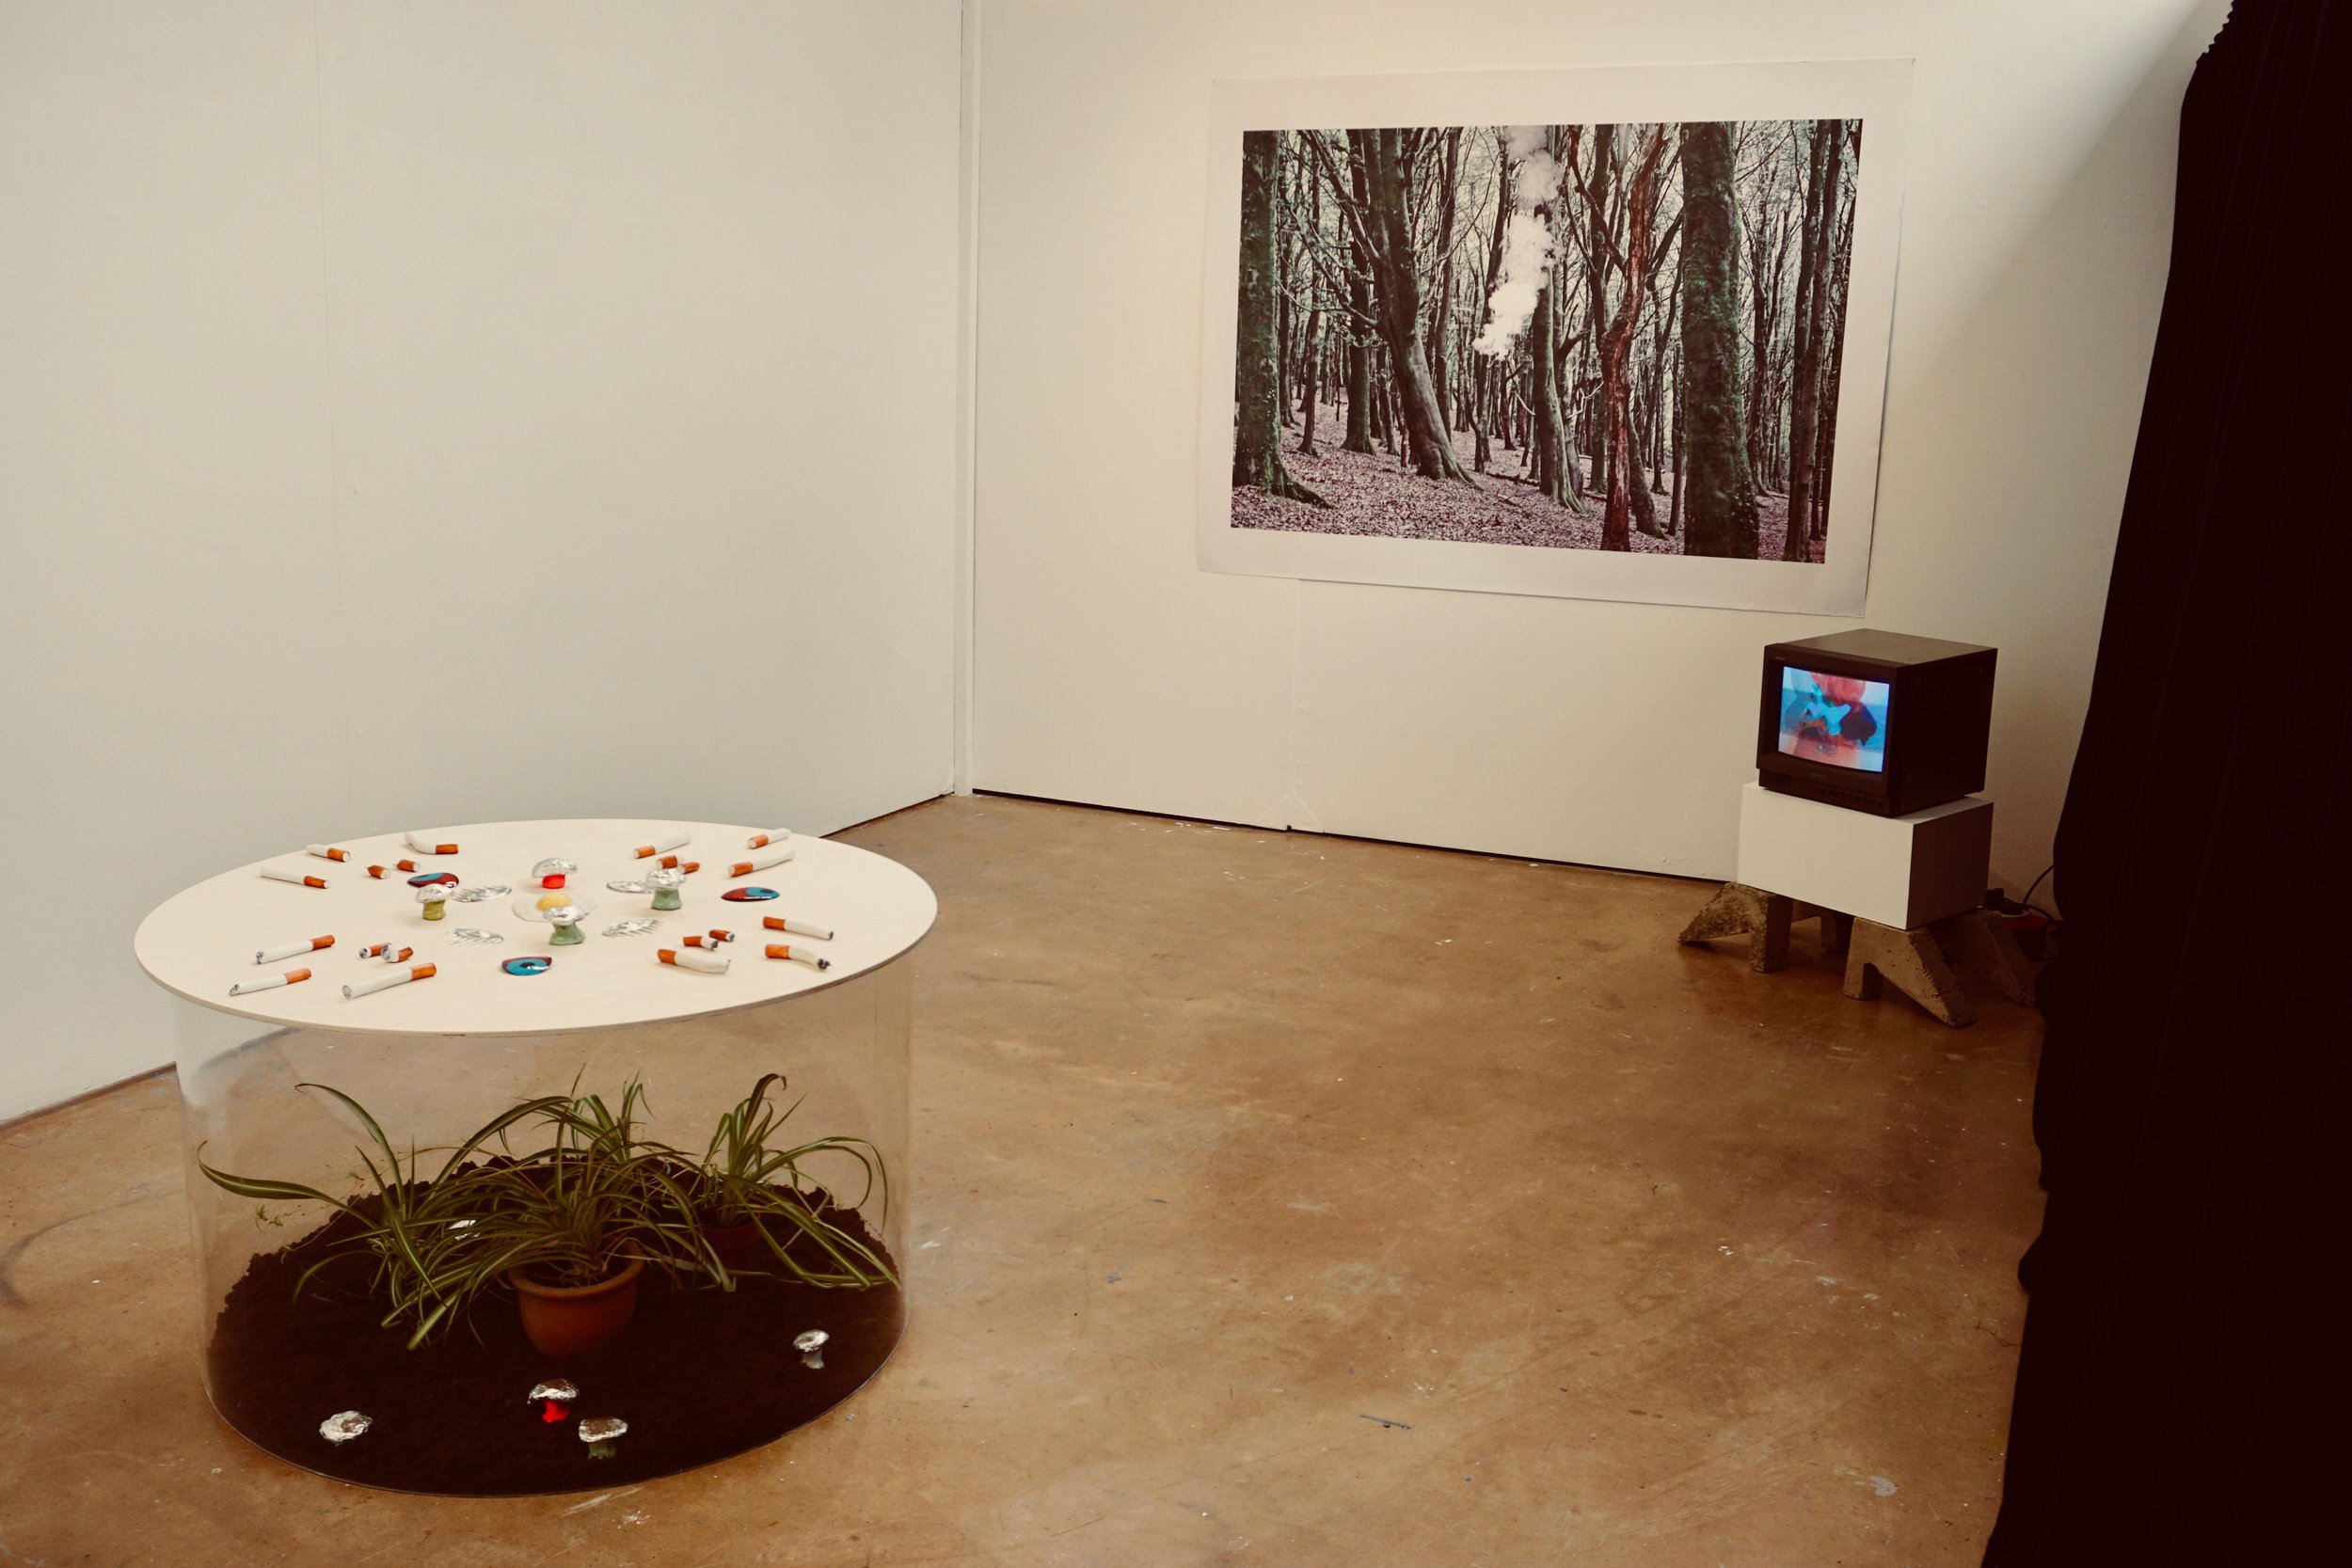 installation view of MFA show at Cardiff school of Art and Design. photography, video, sculpture. September 2019